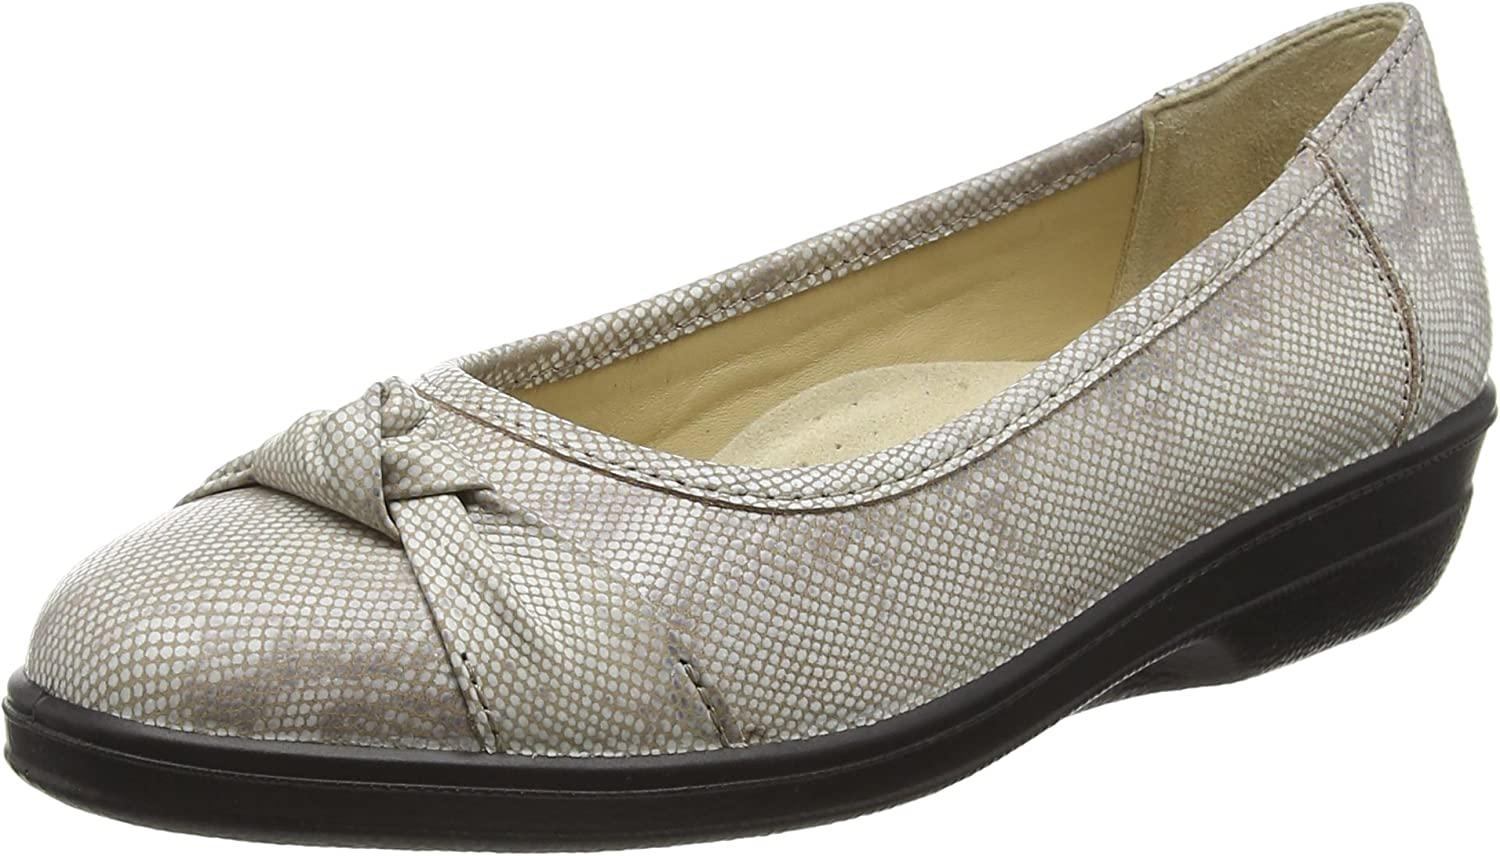 PADDERS Fiona Womens Casual Ballet Pumps